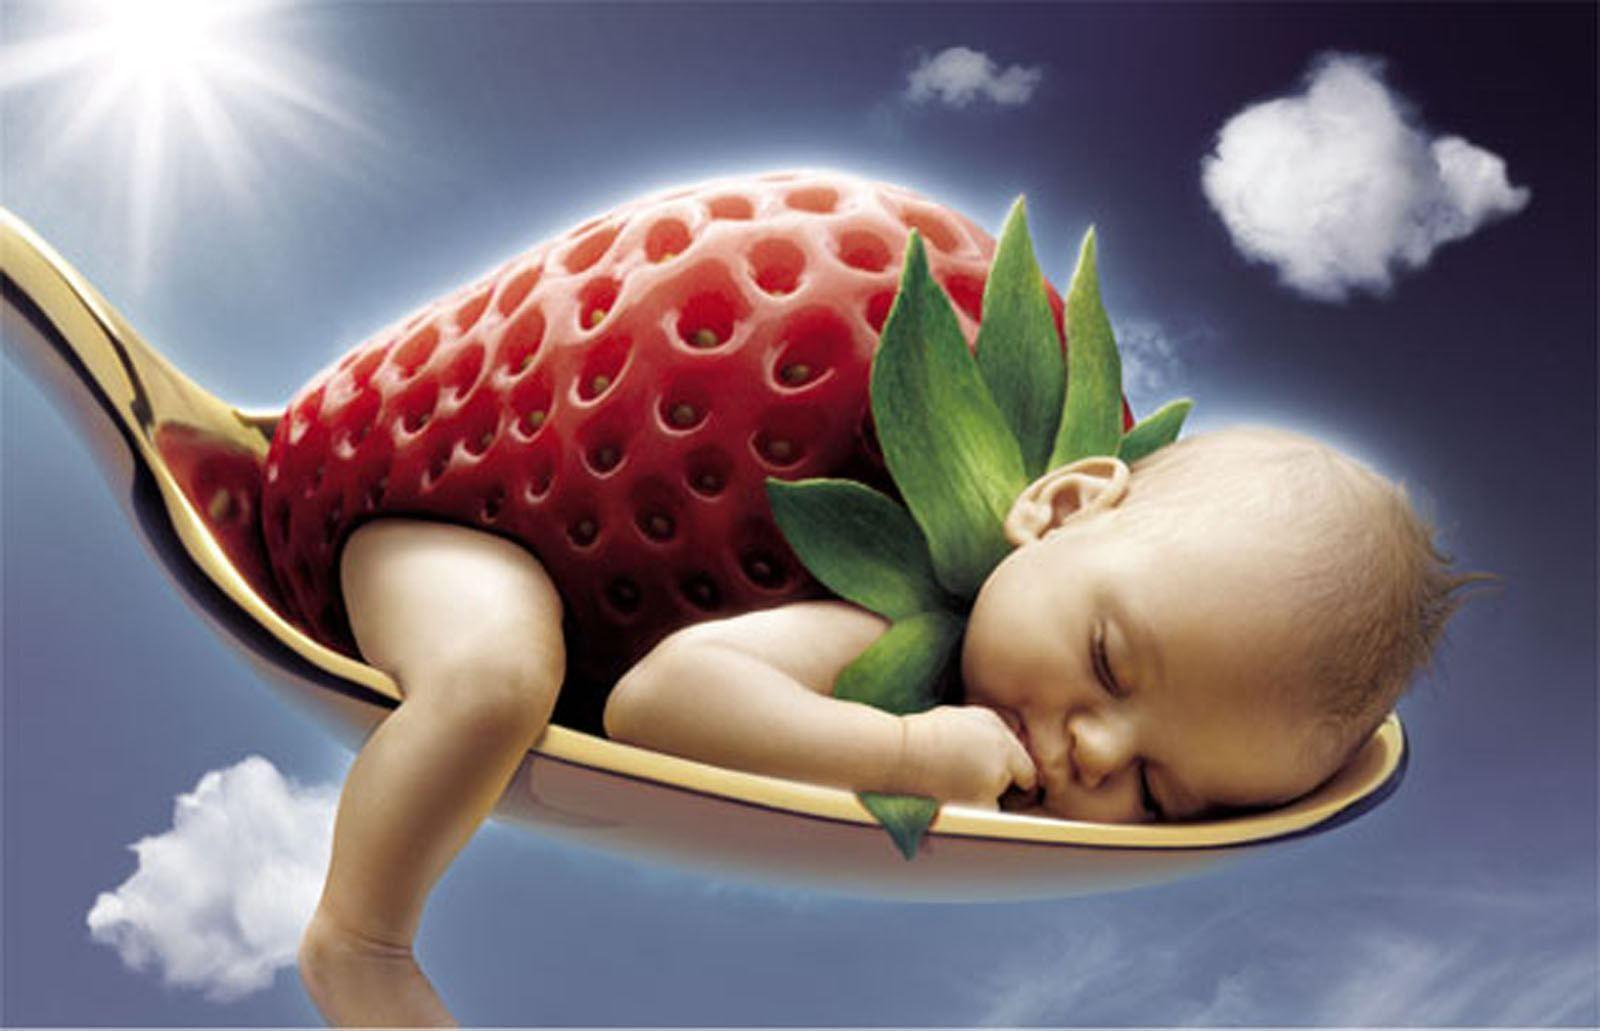 Cute Laughing Baby Wallpapers: Sweet Desktop Backgrounds